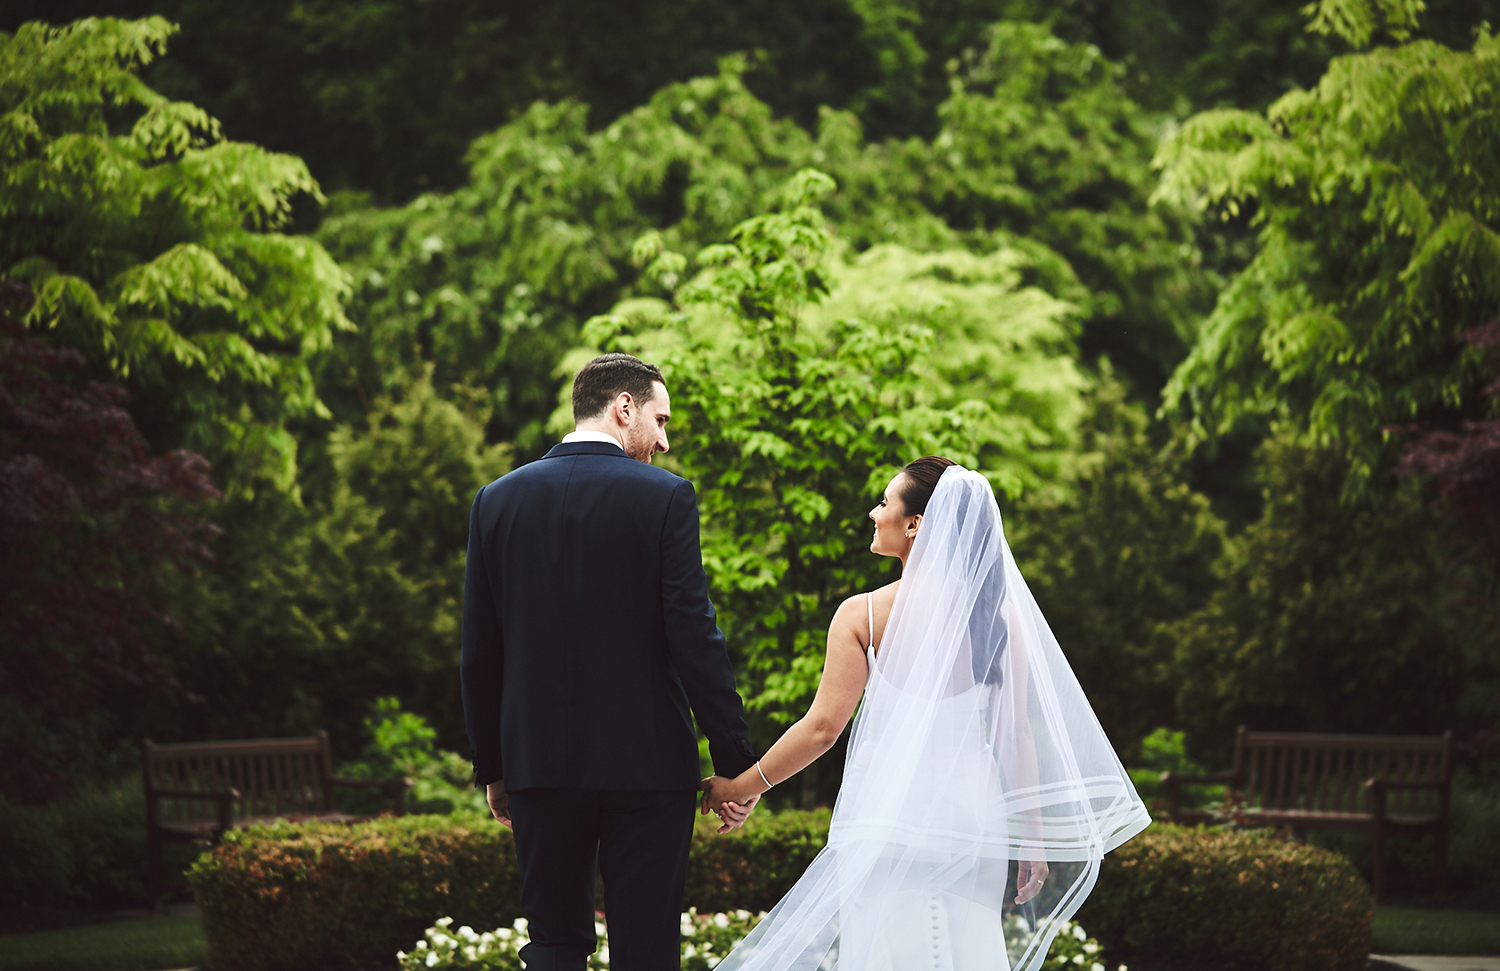 180519_PalaceatSomersetParkWeddingPhotography_NJWeddingPhotographer_By_BriJohnsonWeddings_0061.jpg